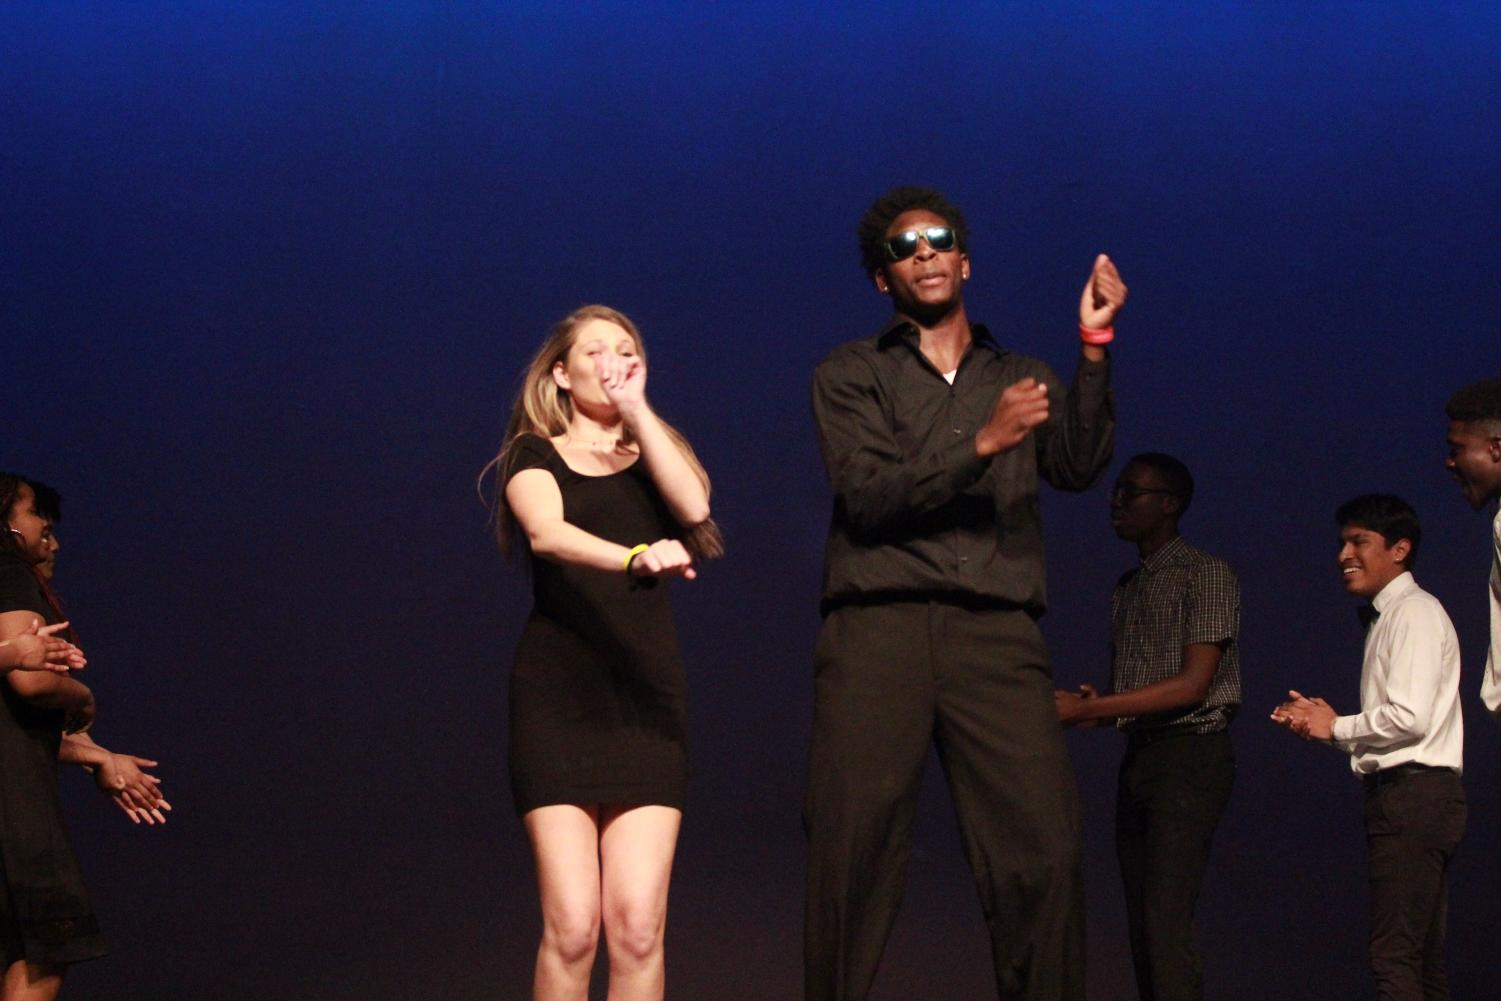 Seniors+Taylor+Dawson+and+Devion+Bridges+hit+%22The+Woah%22+during+the+opening+performance+of+Mr.+Watkins+Mill.